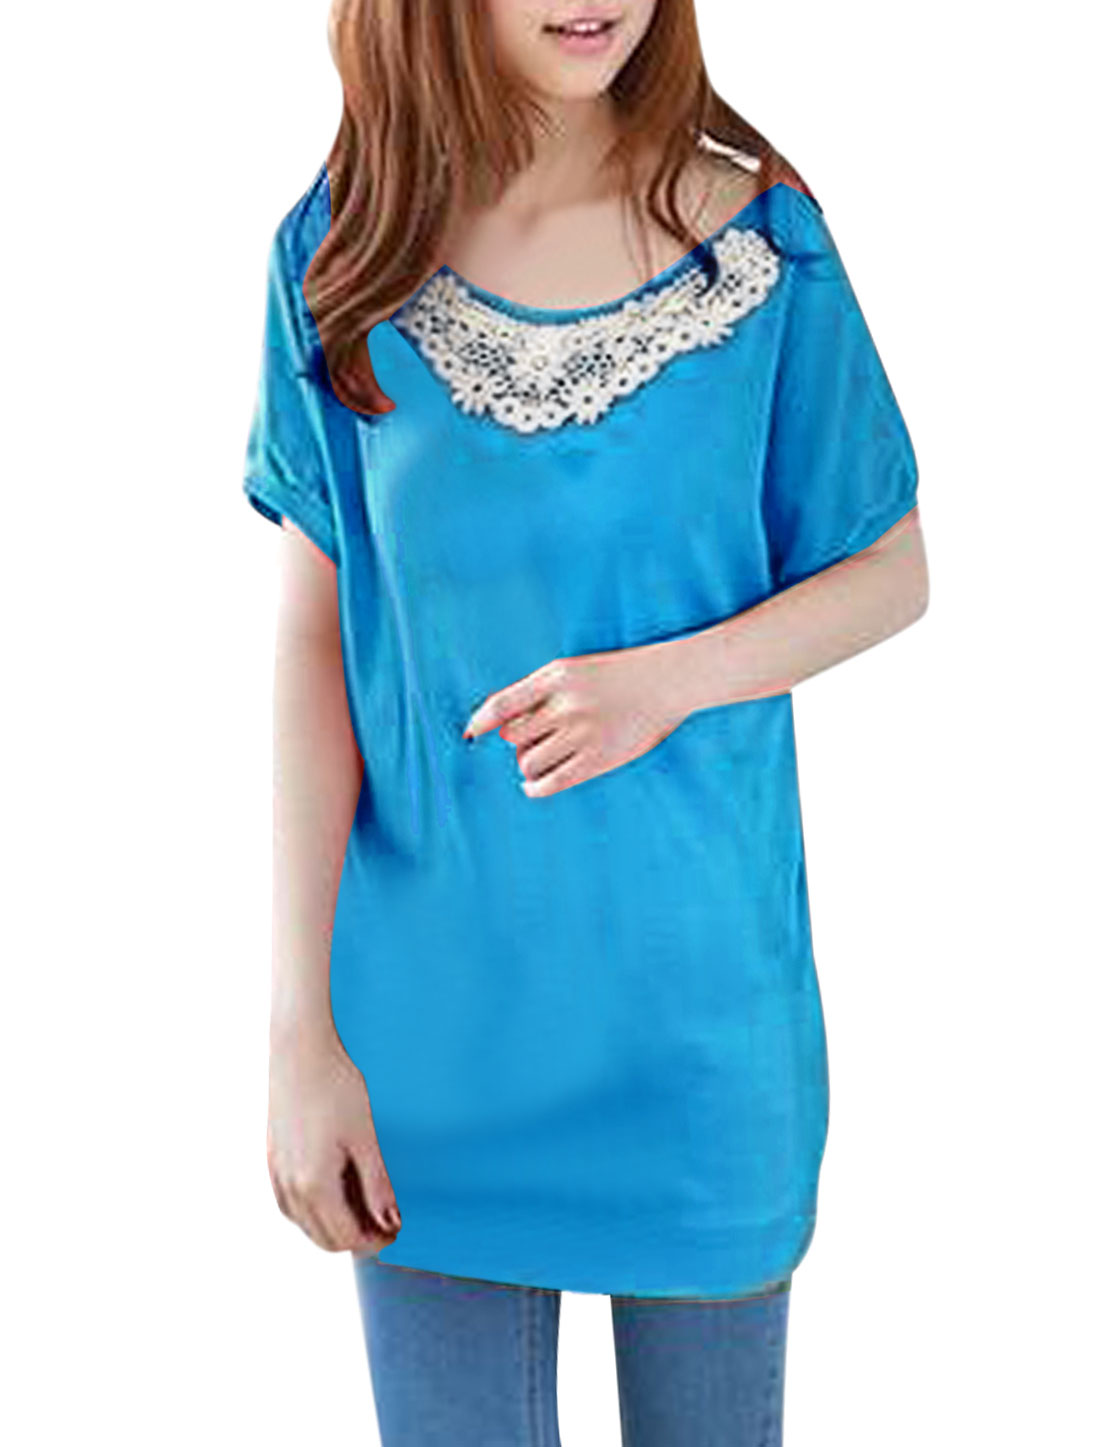 Women Crochet Embellished Round Neck Short-sleeved Shirt Cyan S